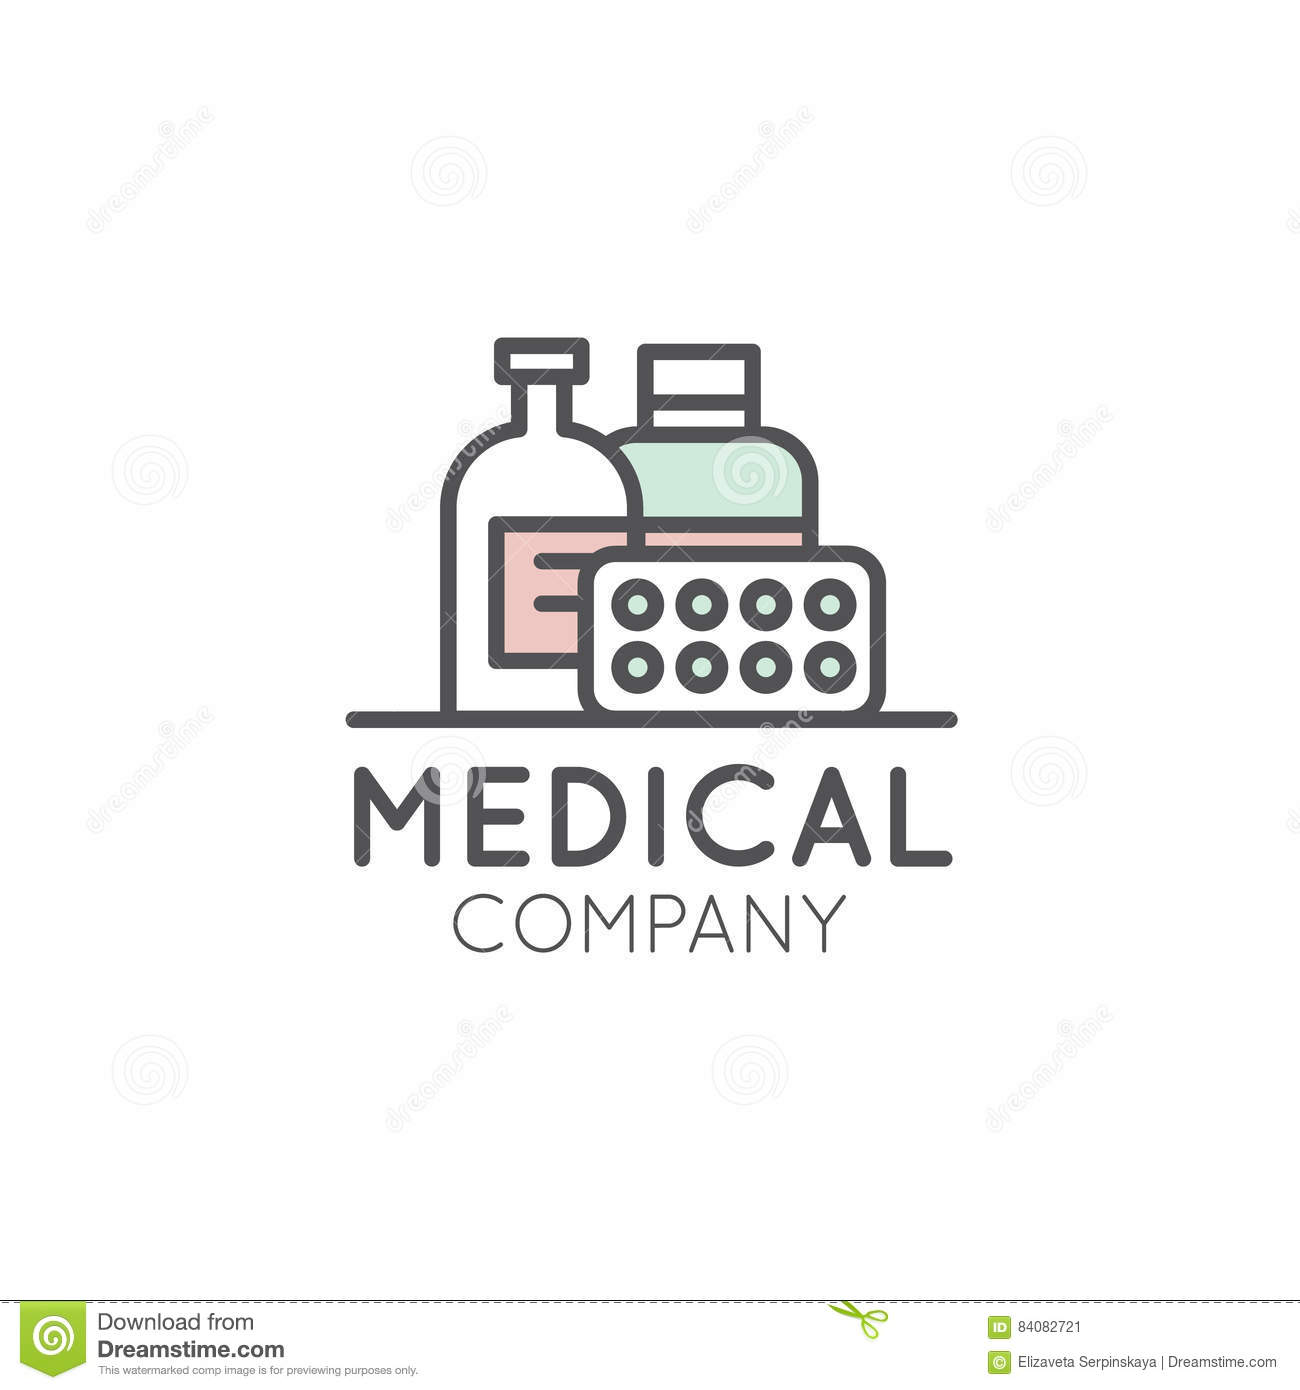 the medicines company Today's top 4 the medicines company jobs in united states leverage your professional network, and get hired new the medicines company jobs added daily.